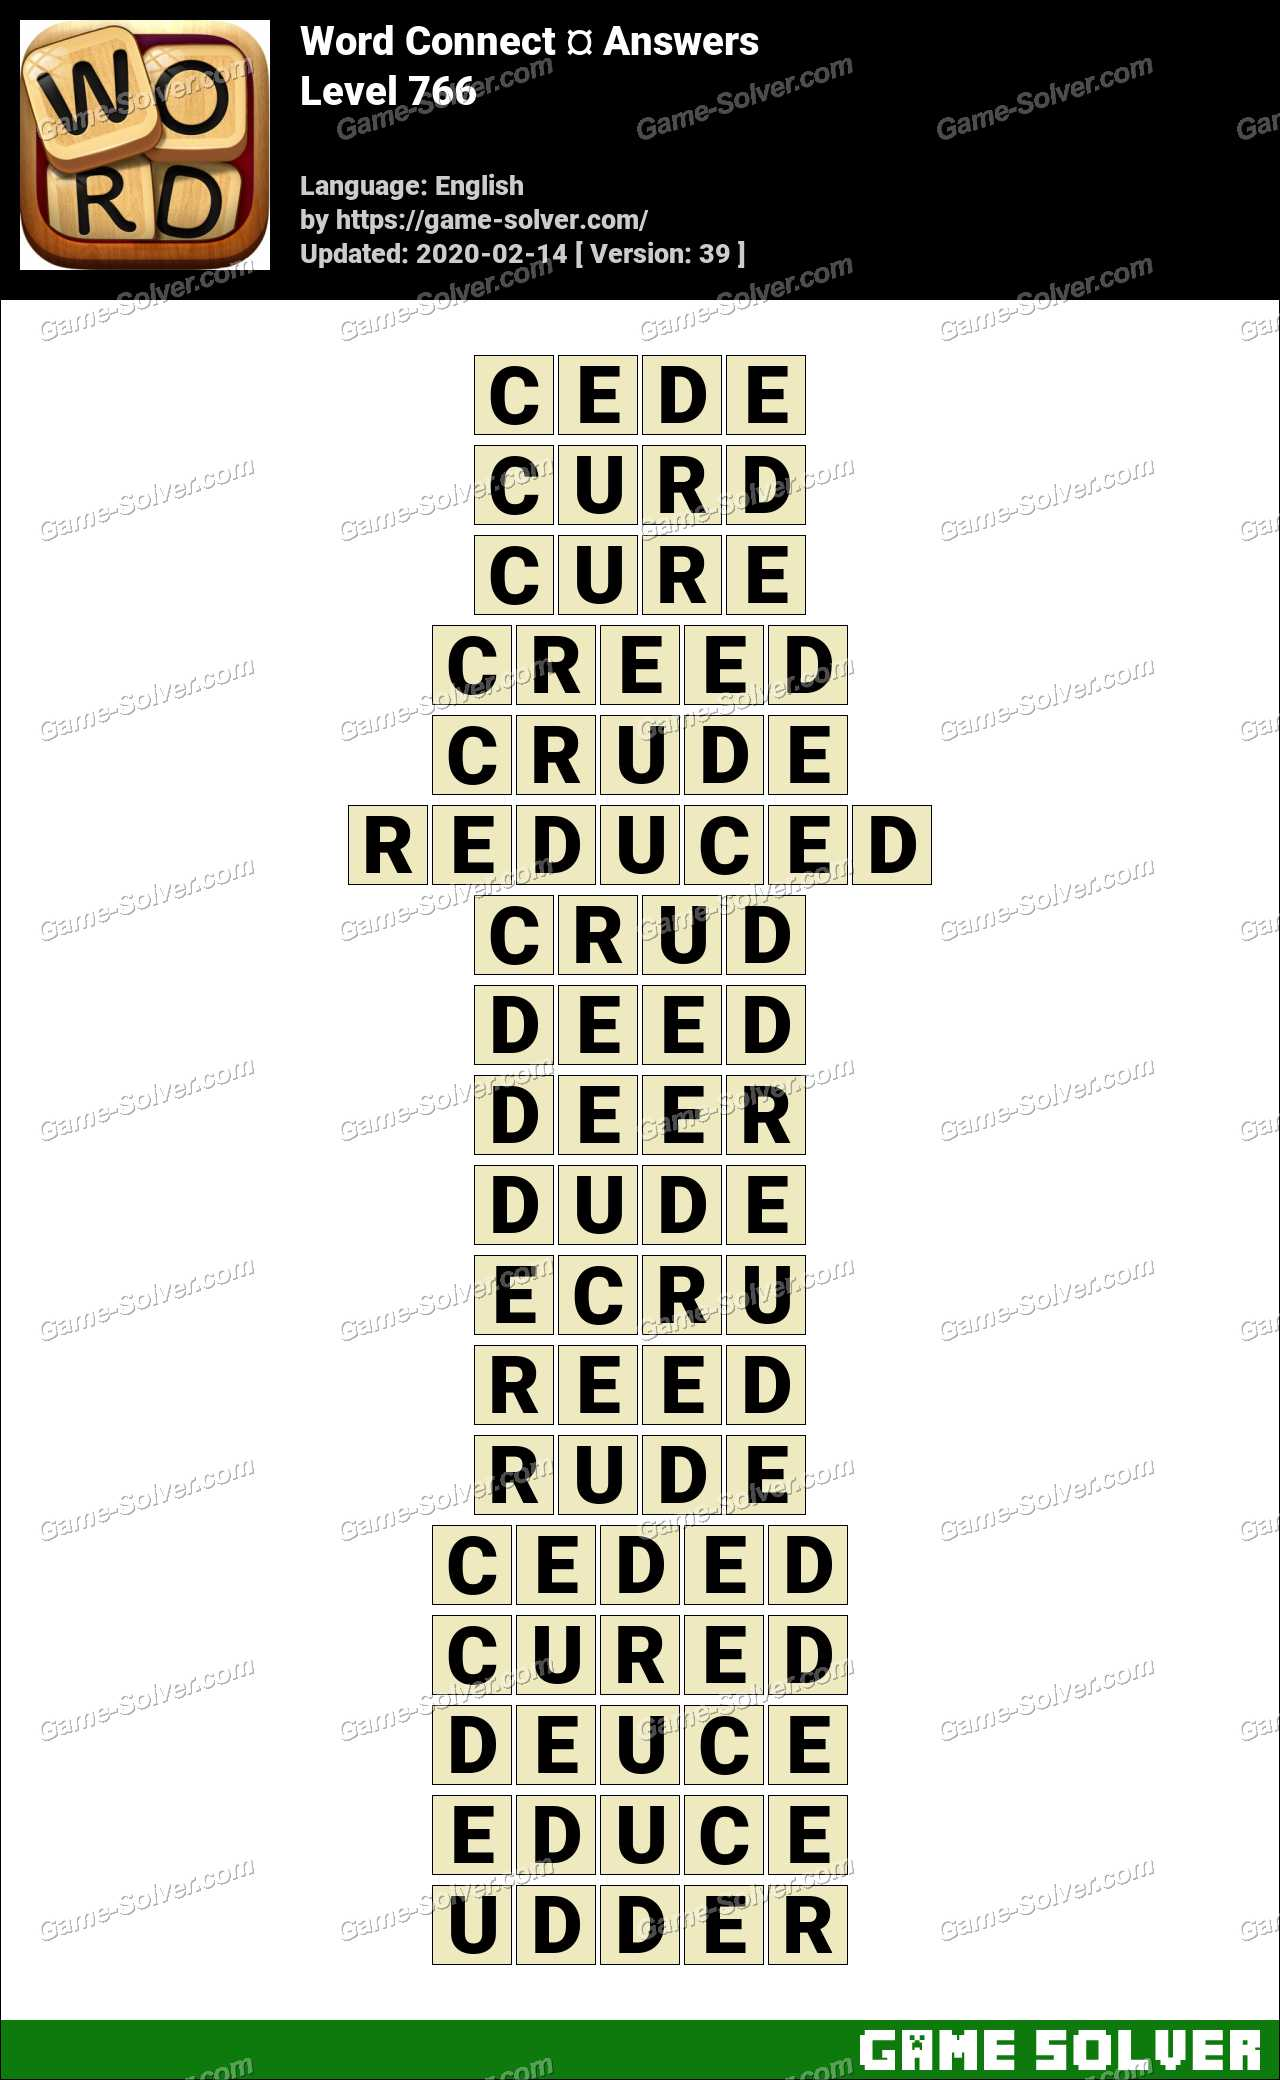 Word Connect Level 766 Answers